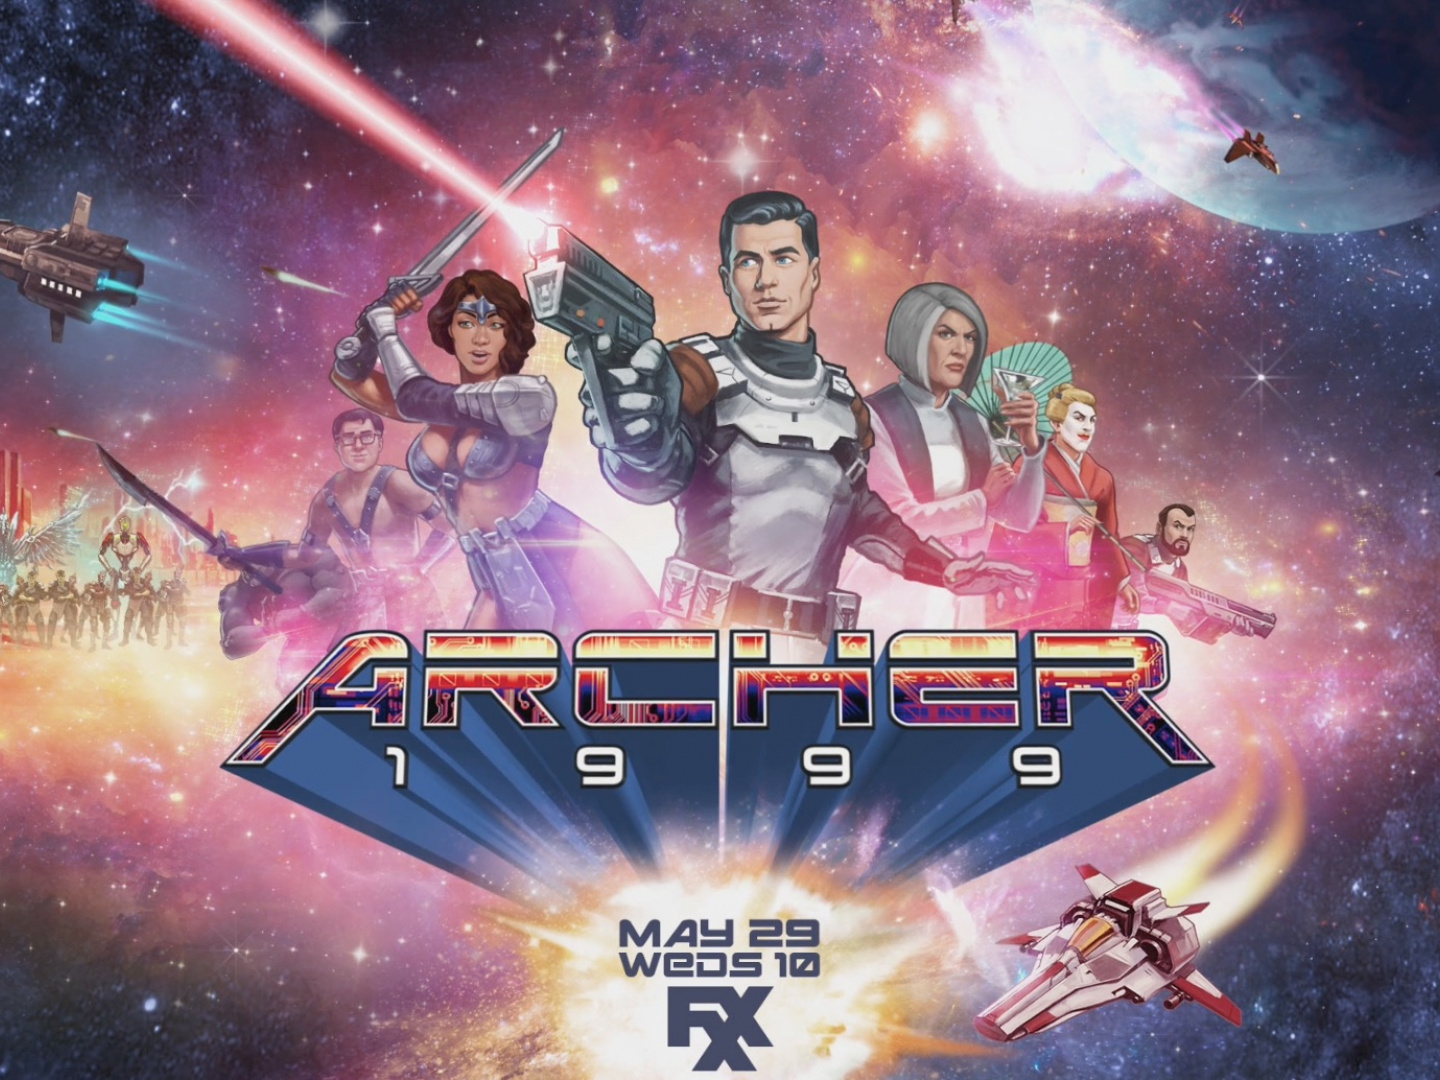 Archer S10 - Motion Poster Thumbnail